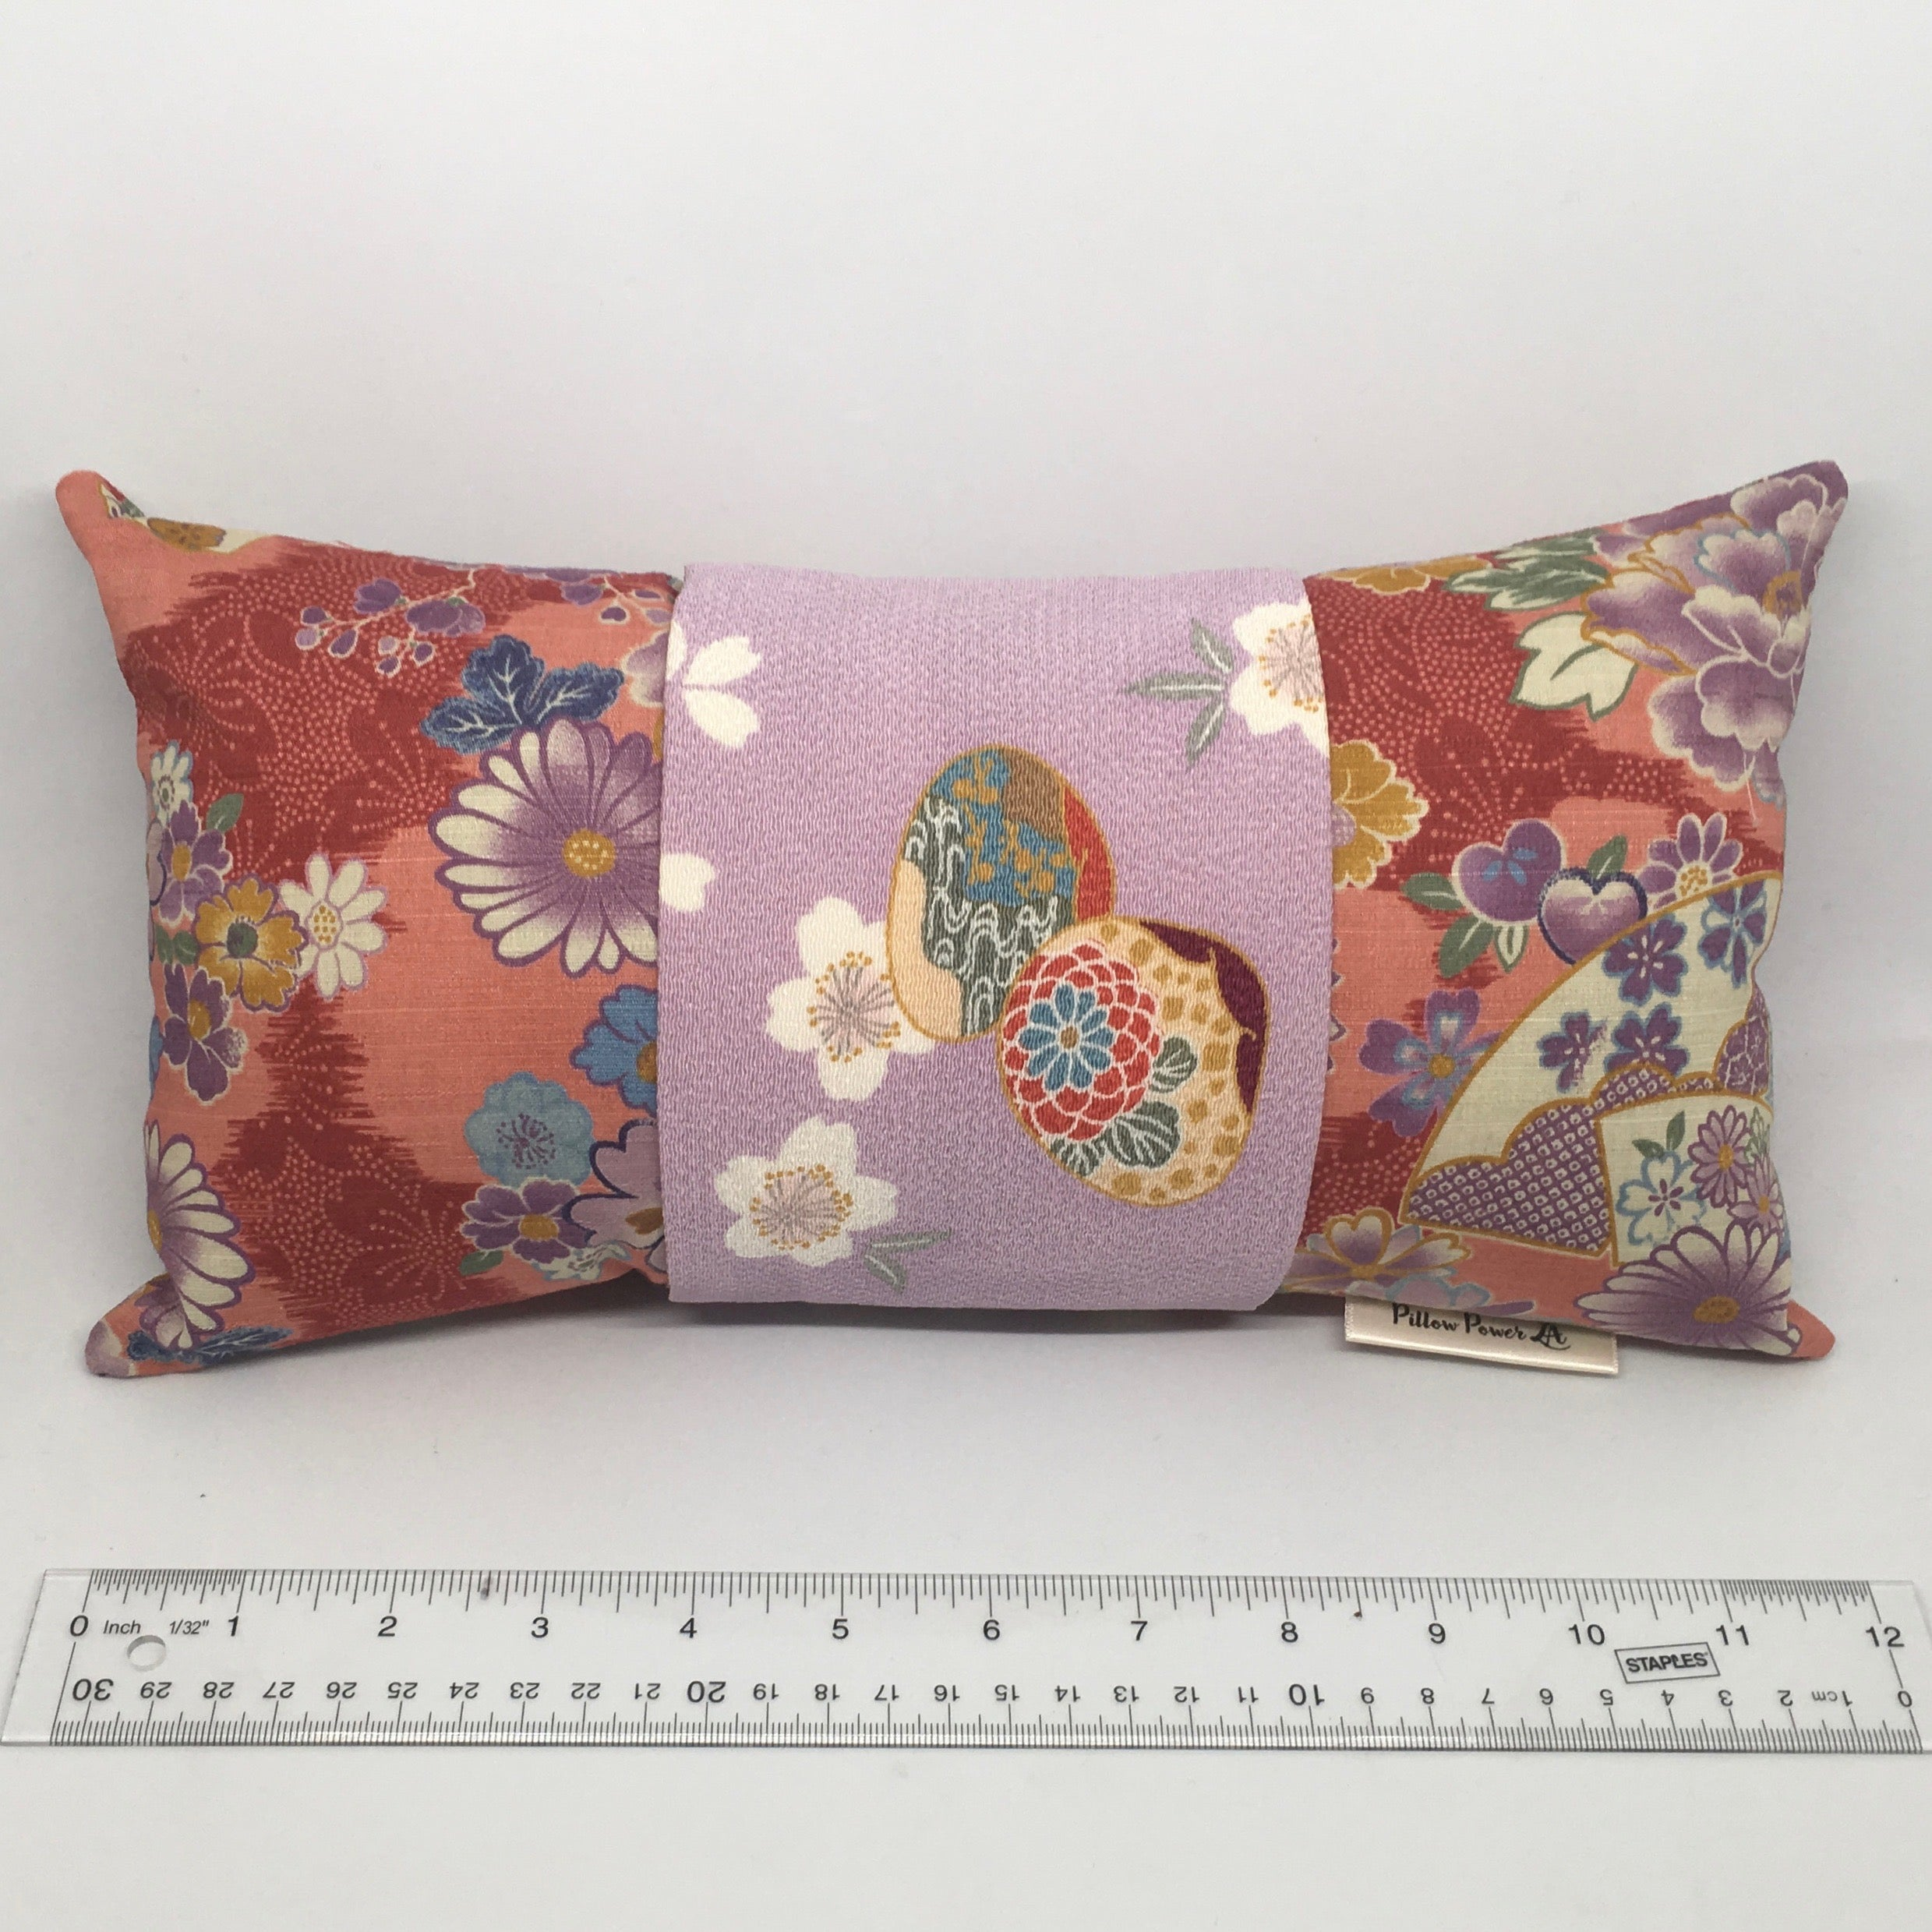 Lavender Fans -  Pillow Pocket for your Intentions